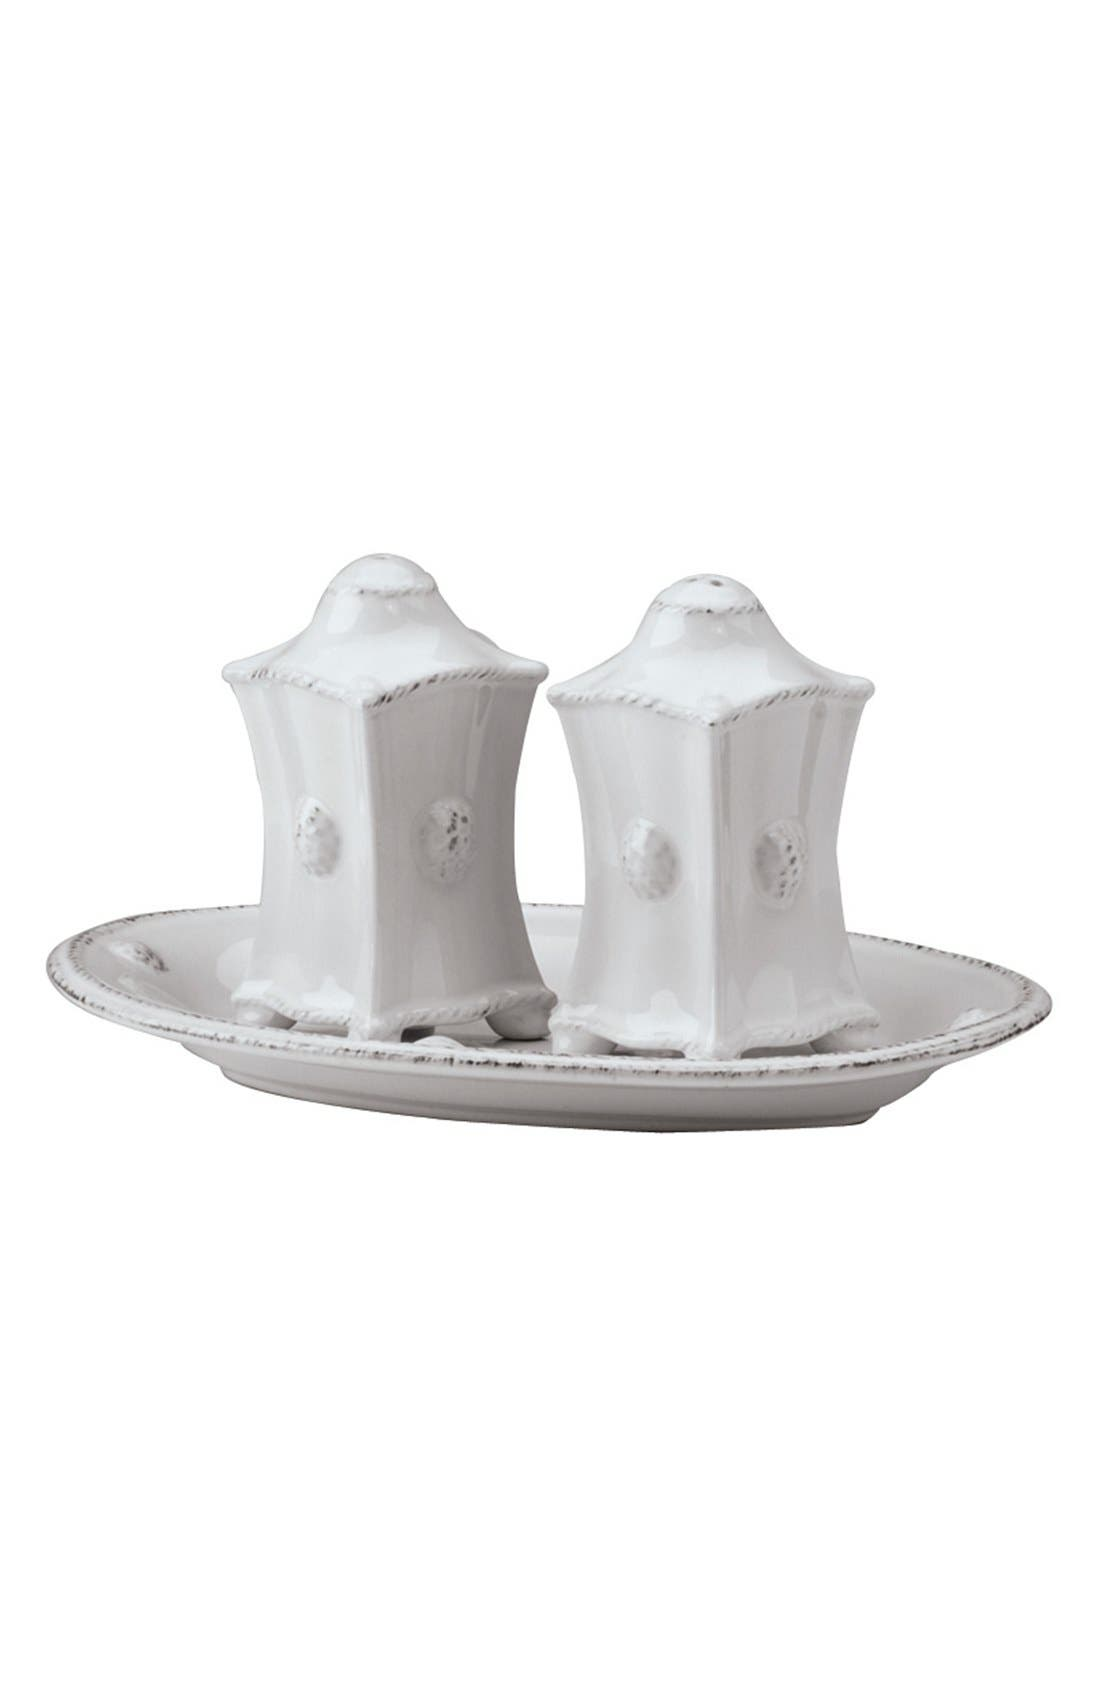 Juliska 'Berry and Thread' Ceramic Salt & Pepper Shakers